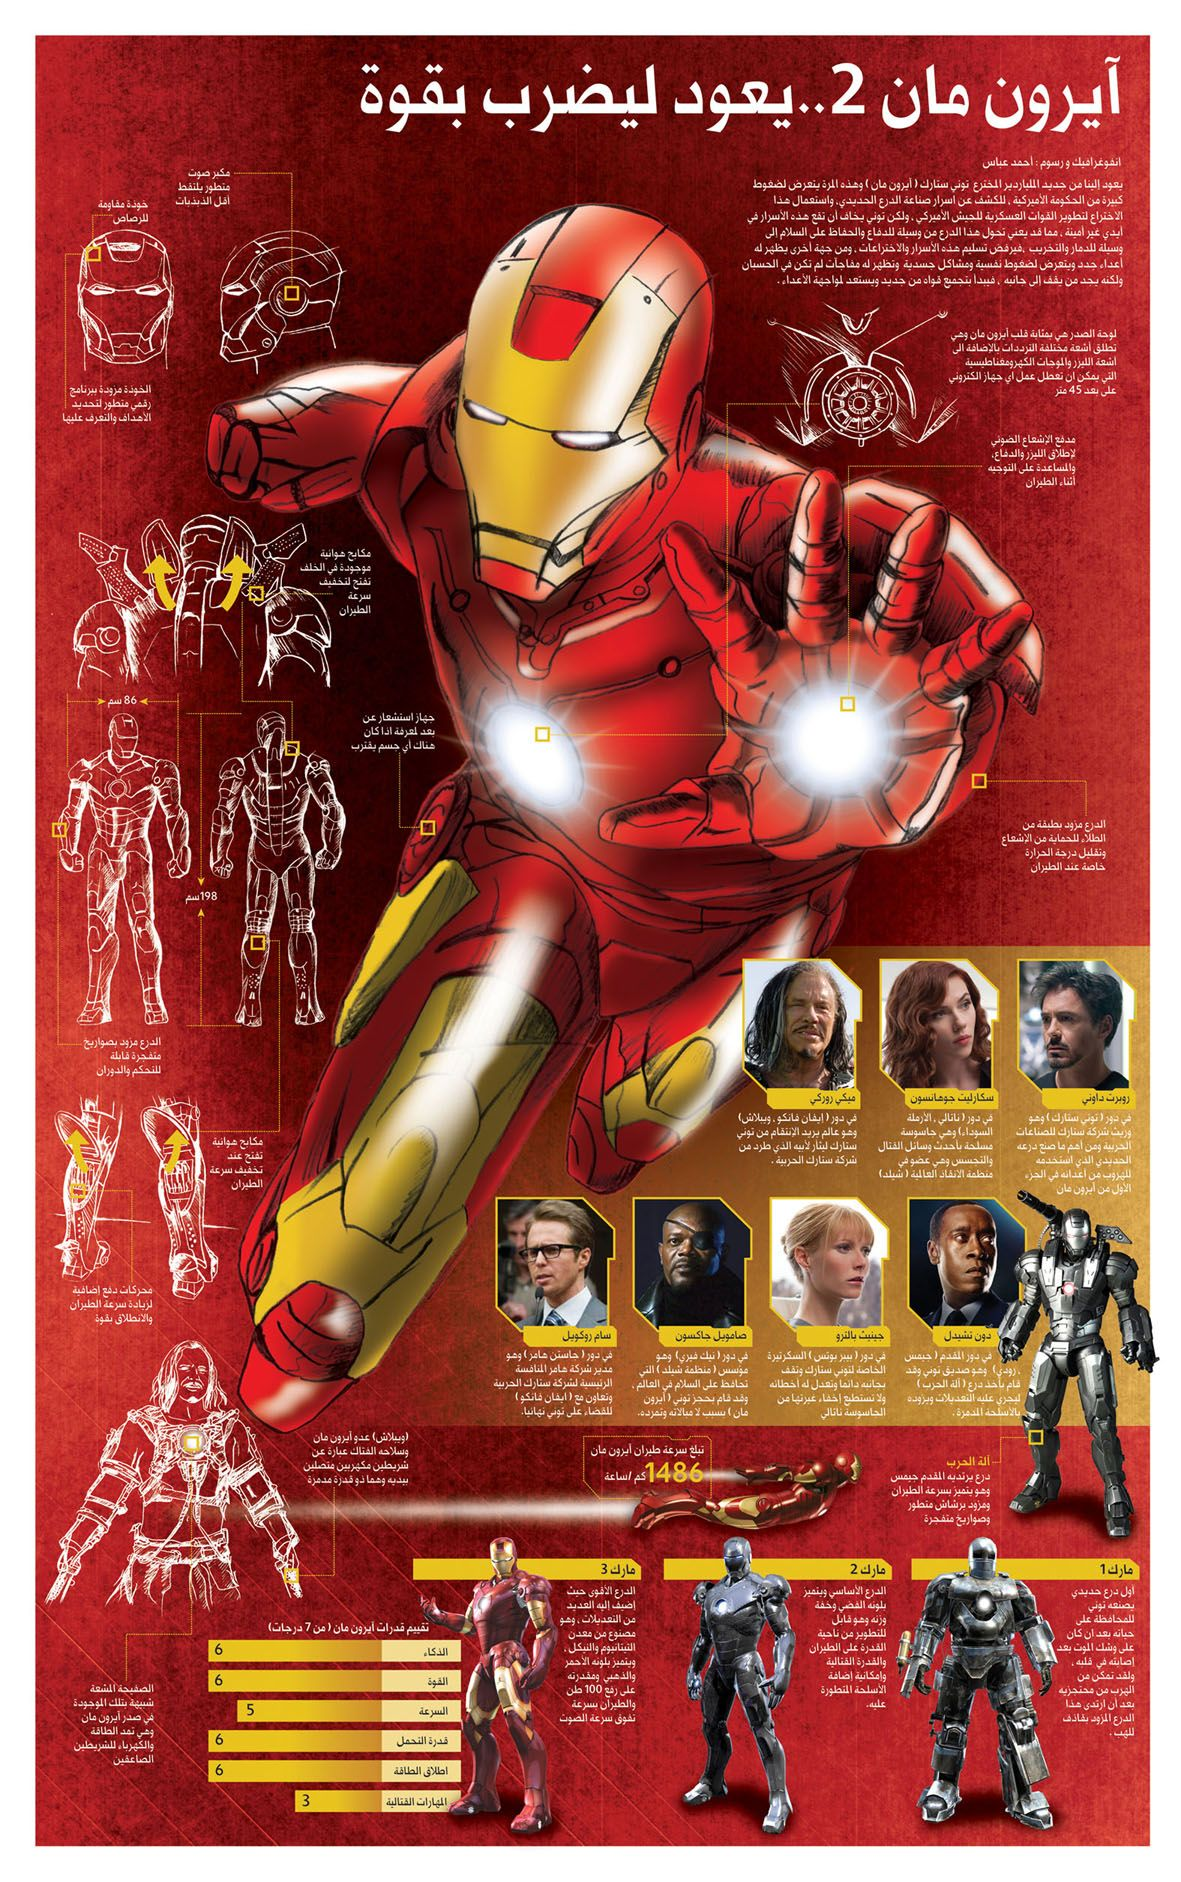 Subject To Change Due To Work In Progress Wip The Best Works Of The World Wide Web W3 Or Internet Open Im Superhero Infographic Iron Man Batman Universe